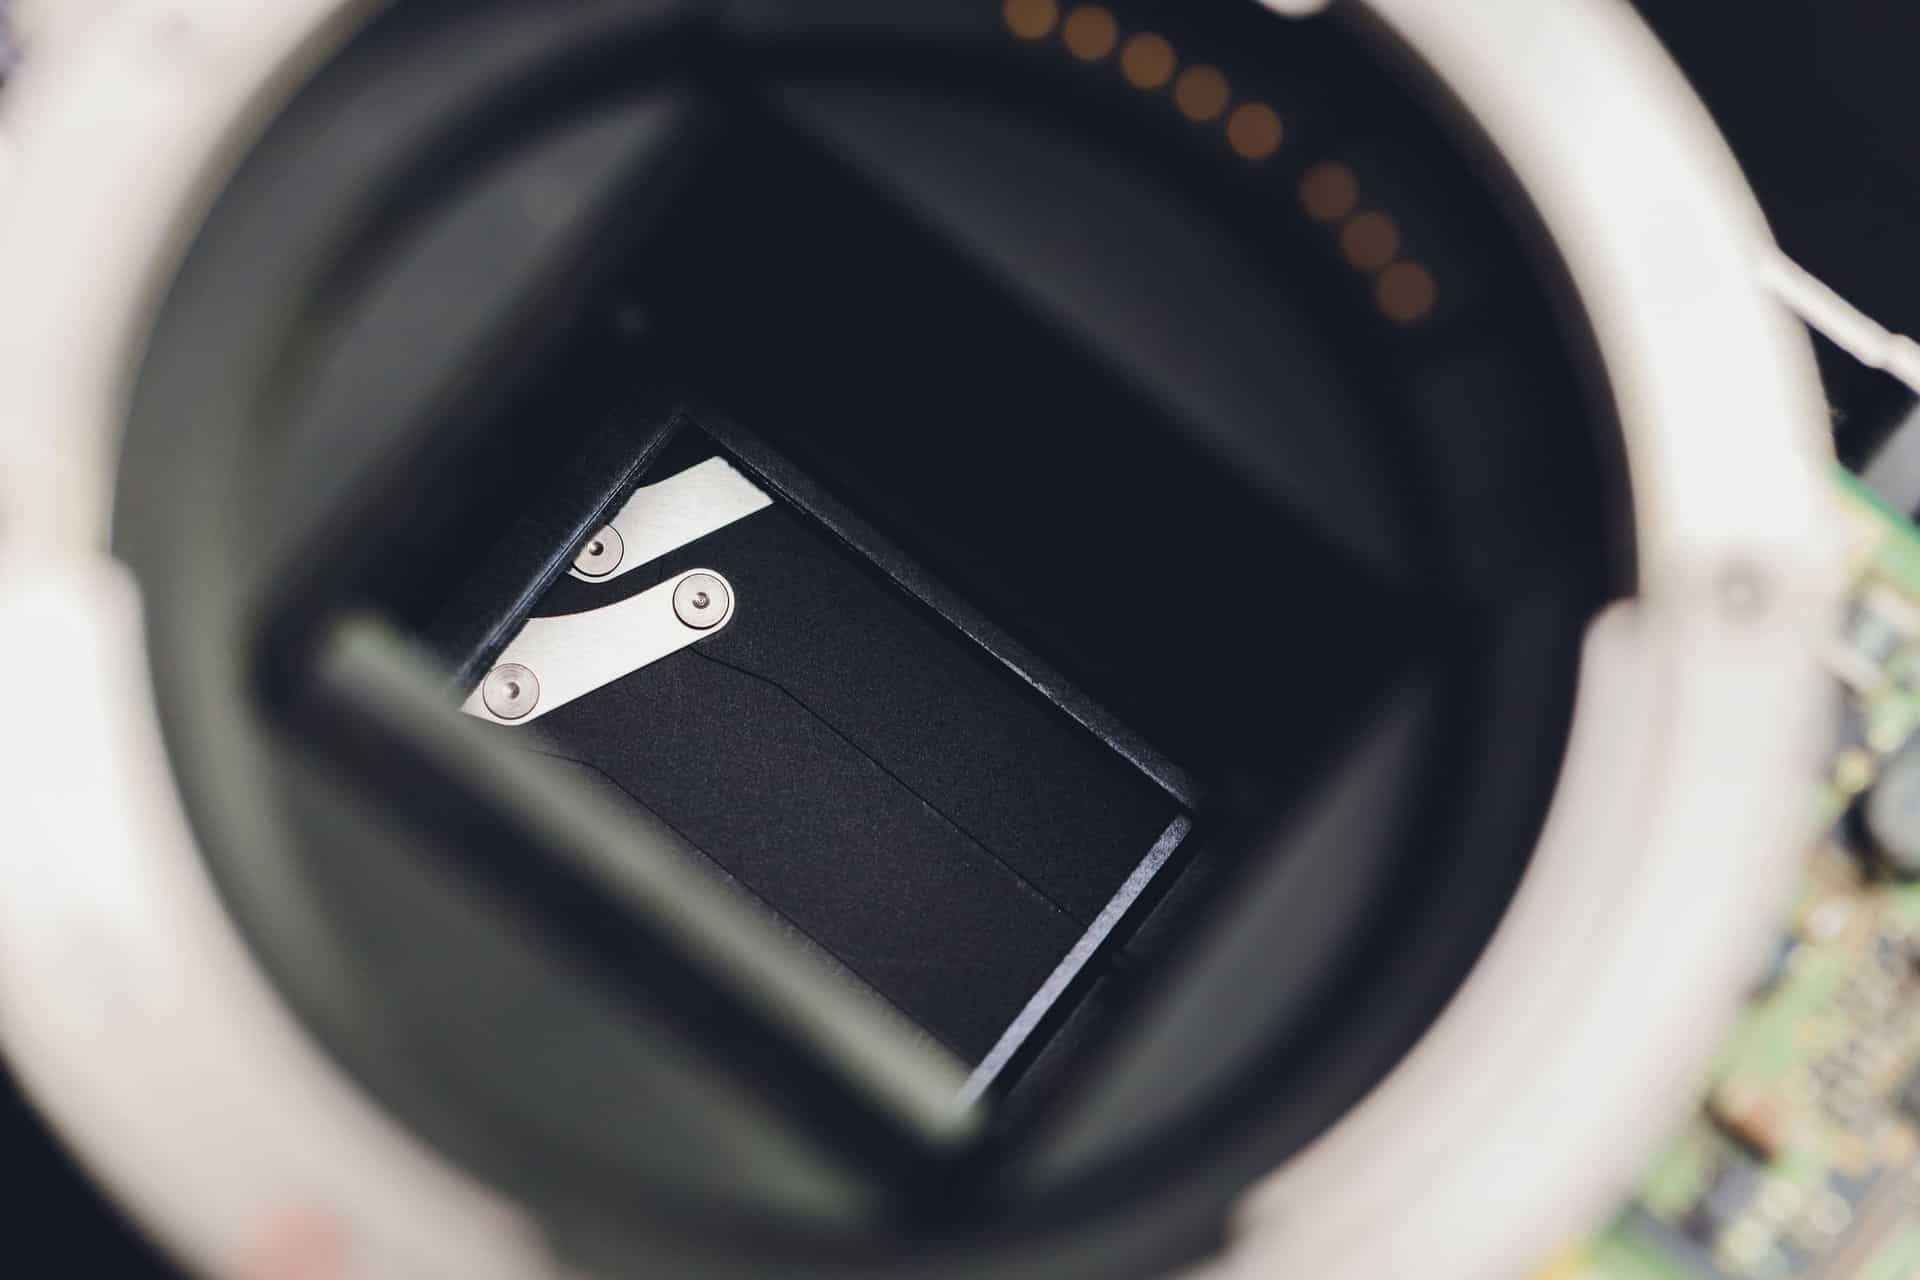 Why Do Mirrorless Cameras Have a Mechanical Shutter?